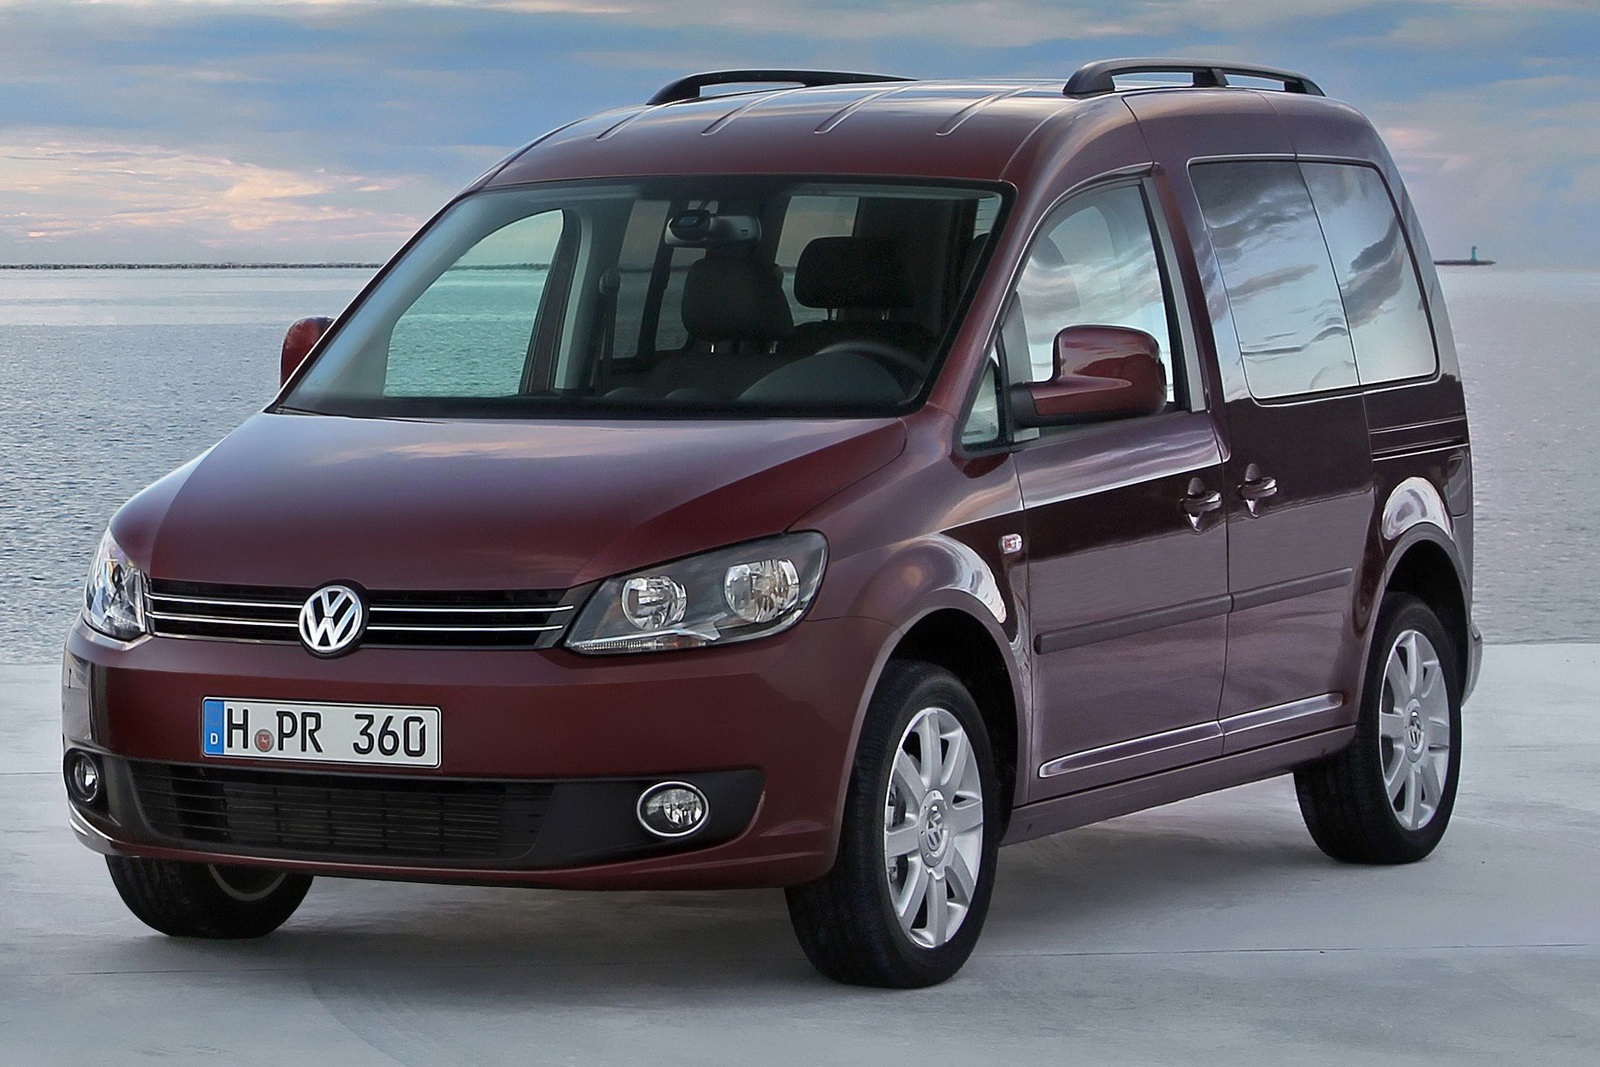 Volkswagen Caddy (facelift) Van 2010